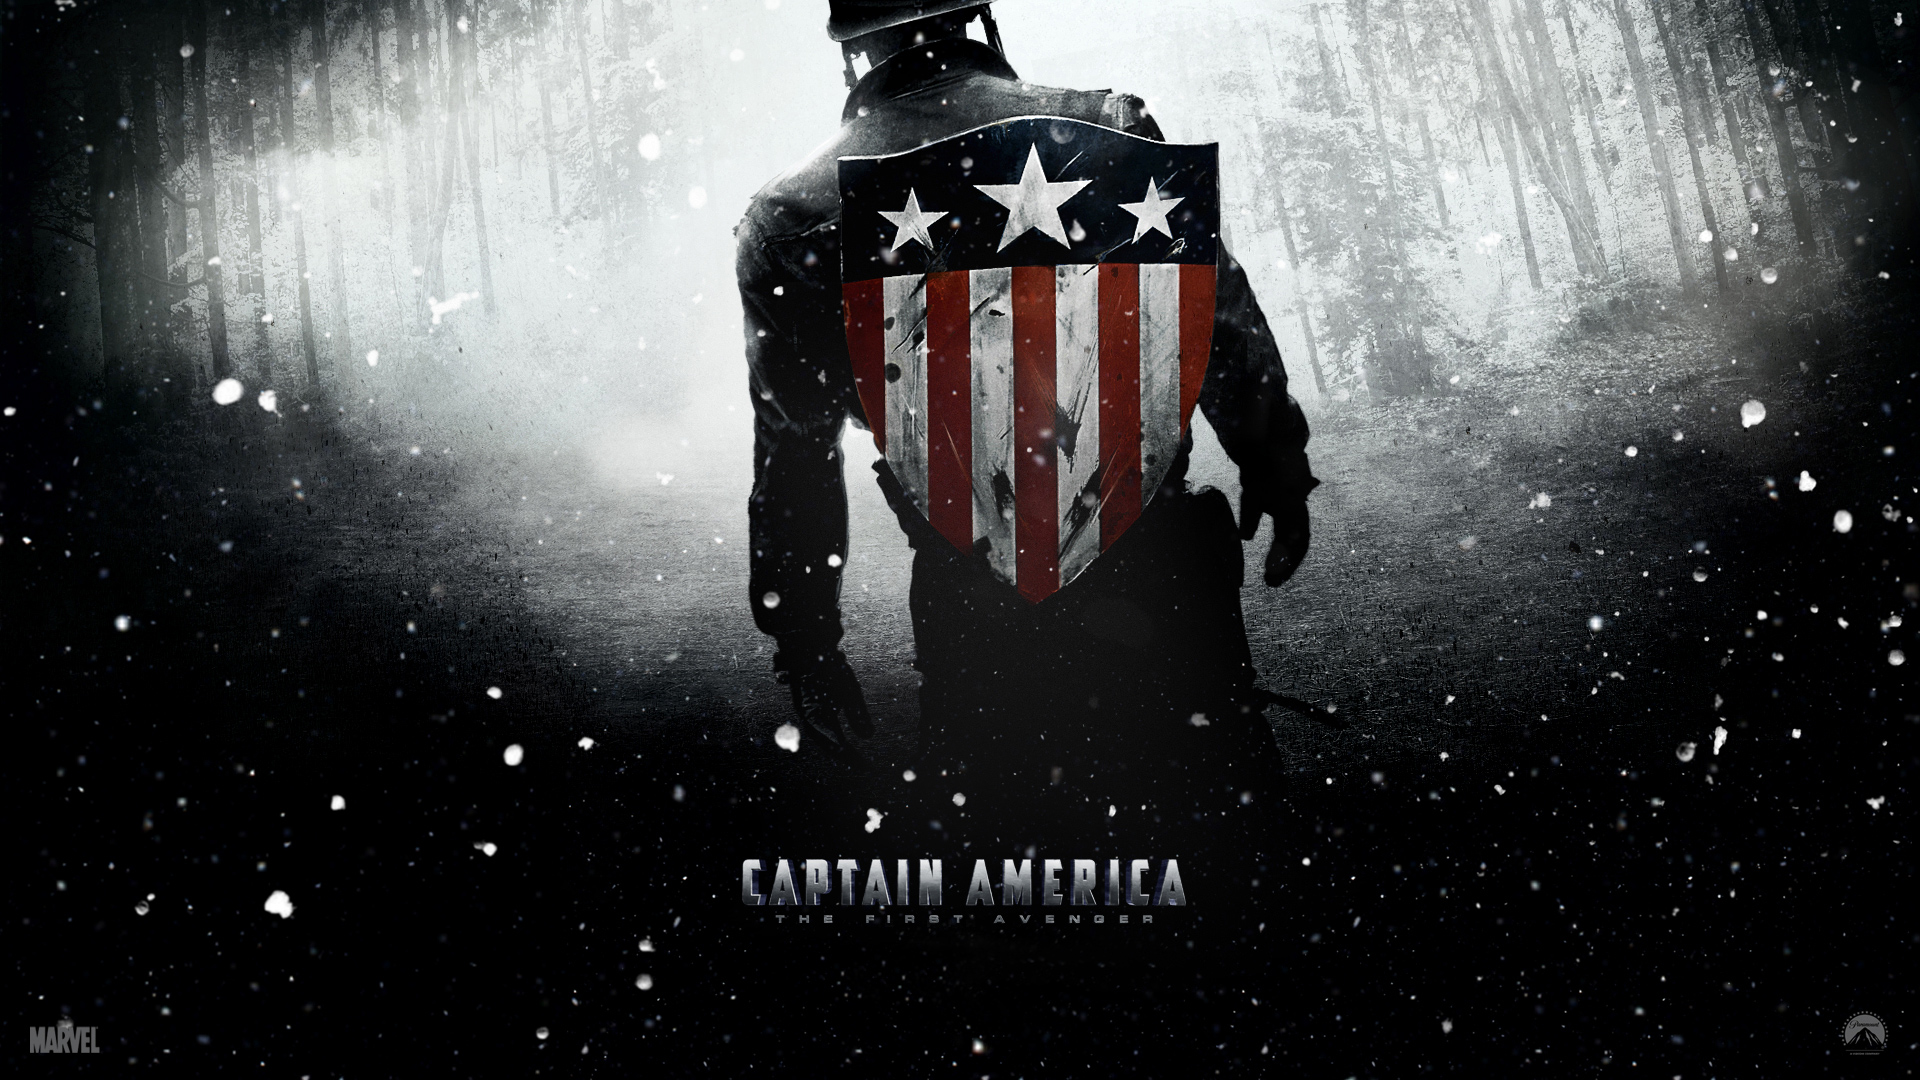 Captain America Wallpapers HD Wallpapers 1920x1080